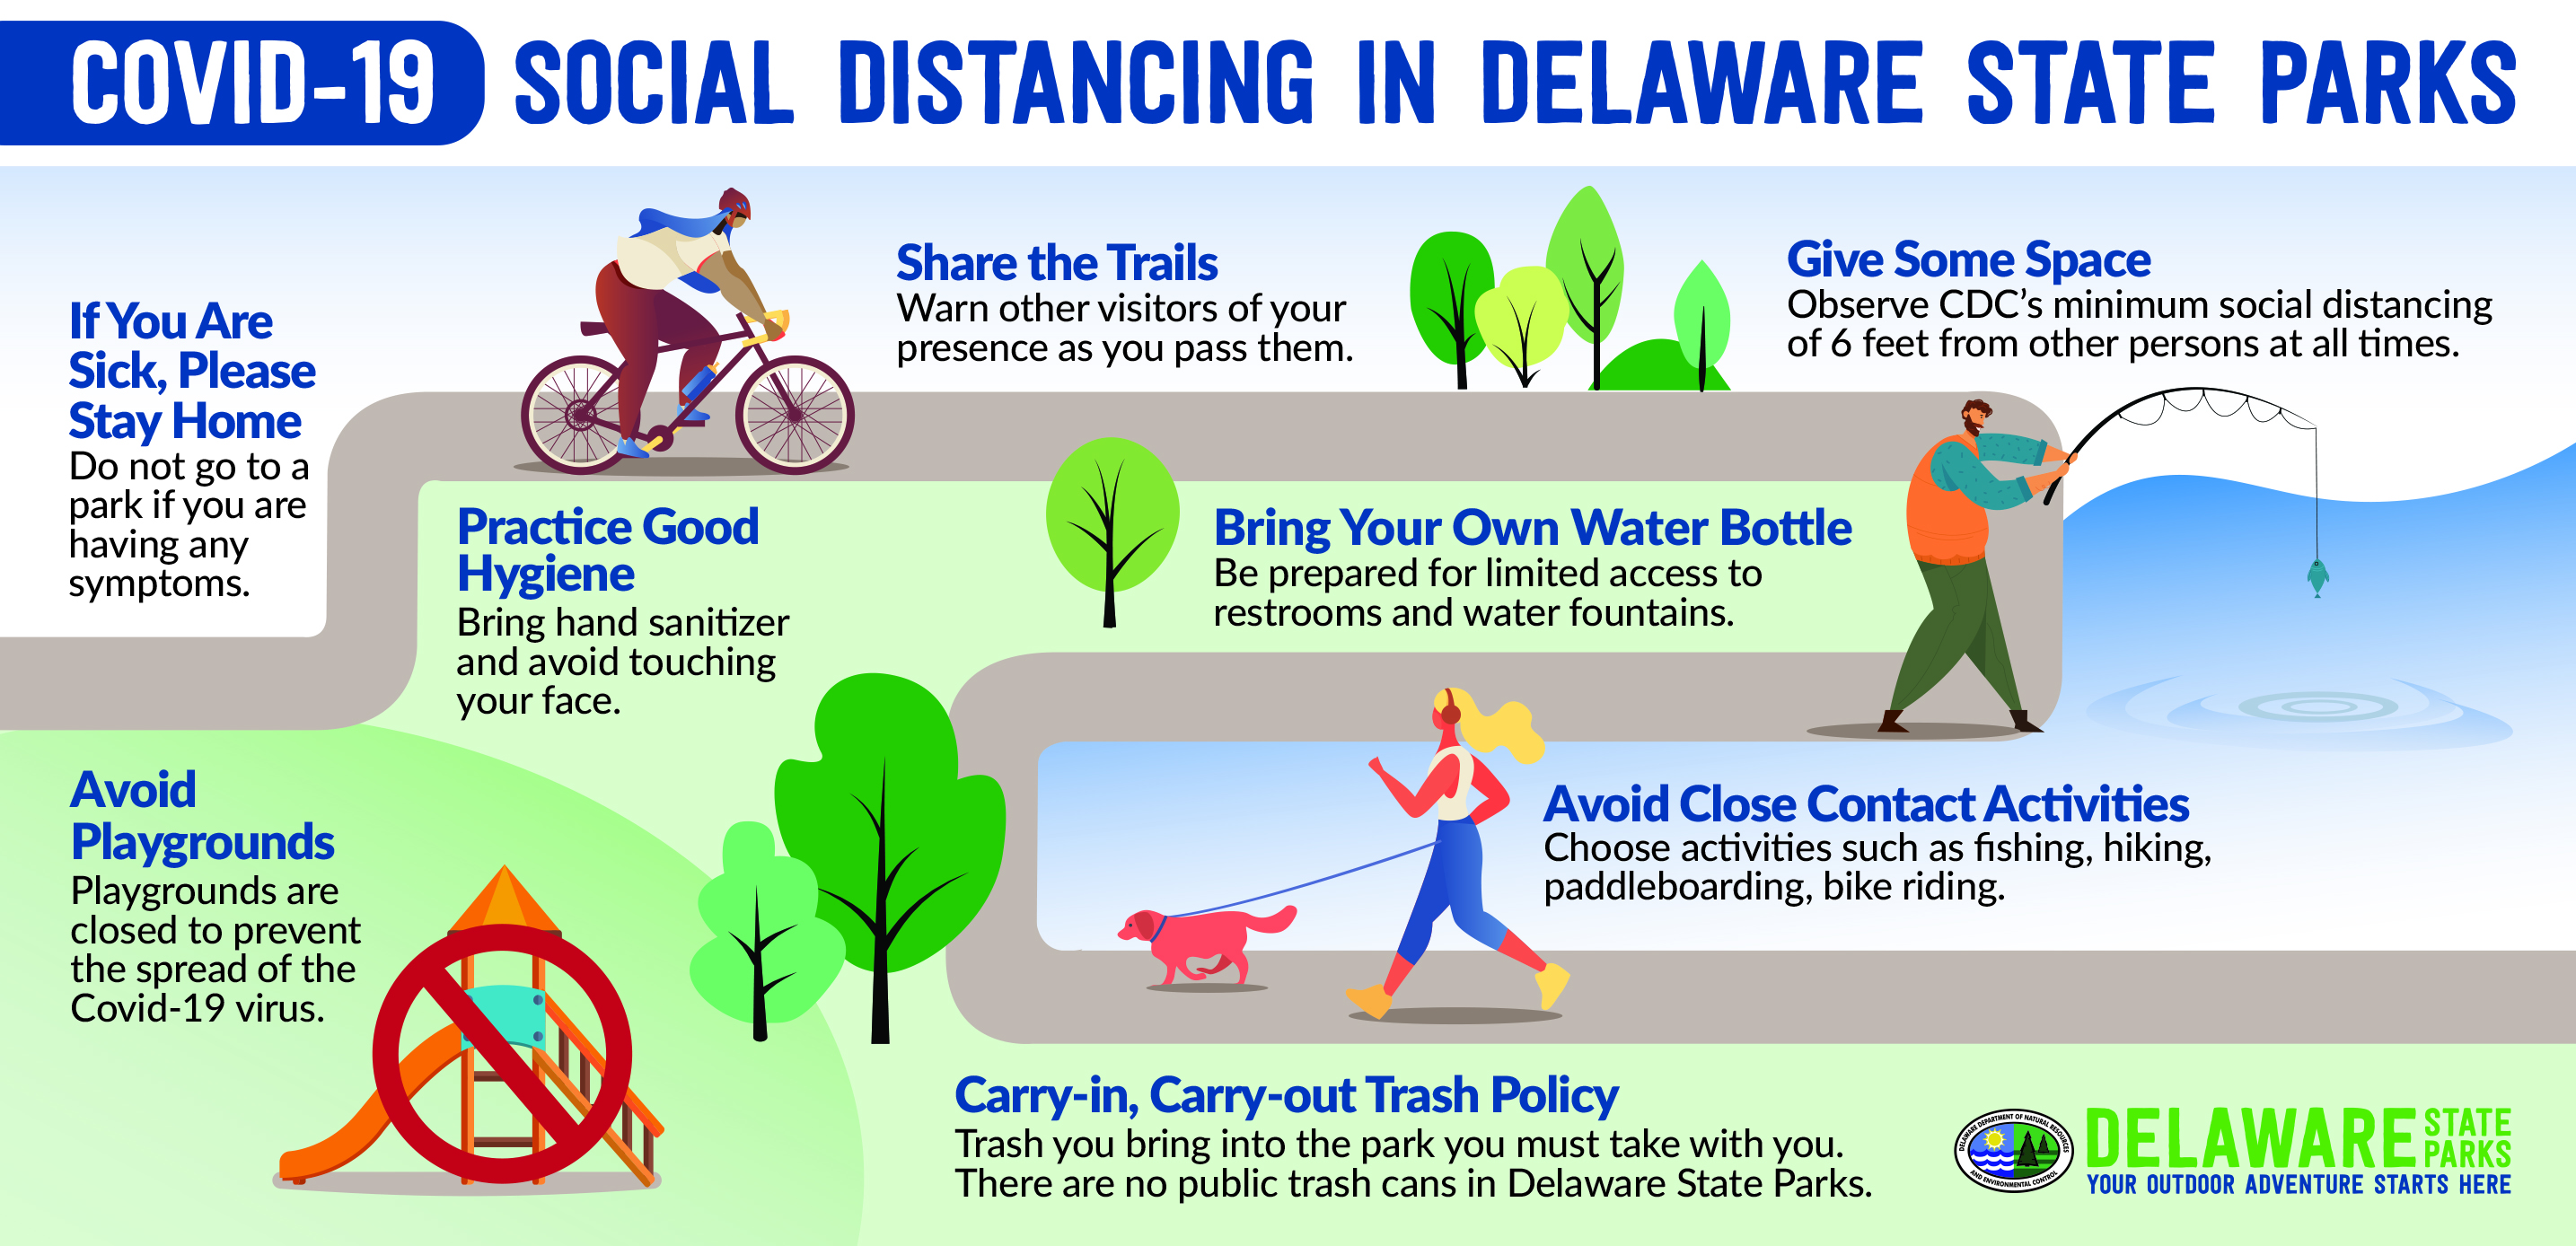 Social Distancing in Delaware State Parks graphic